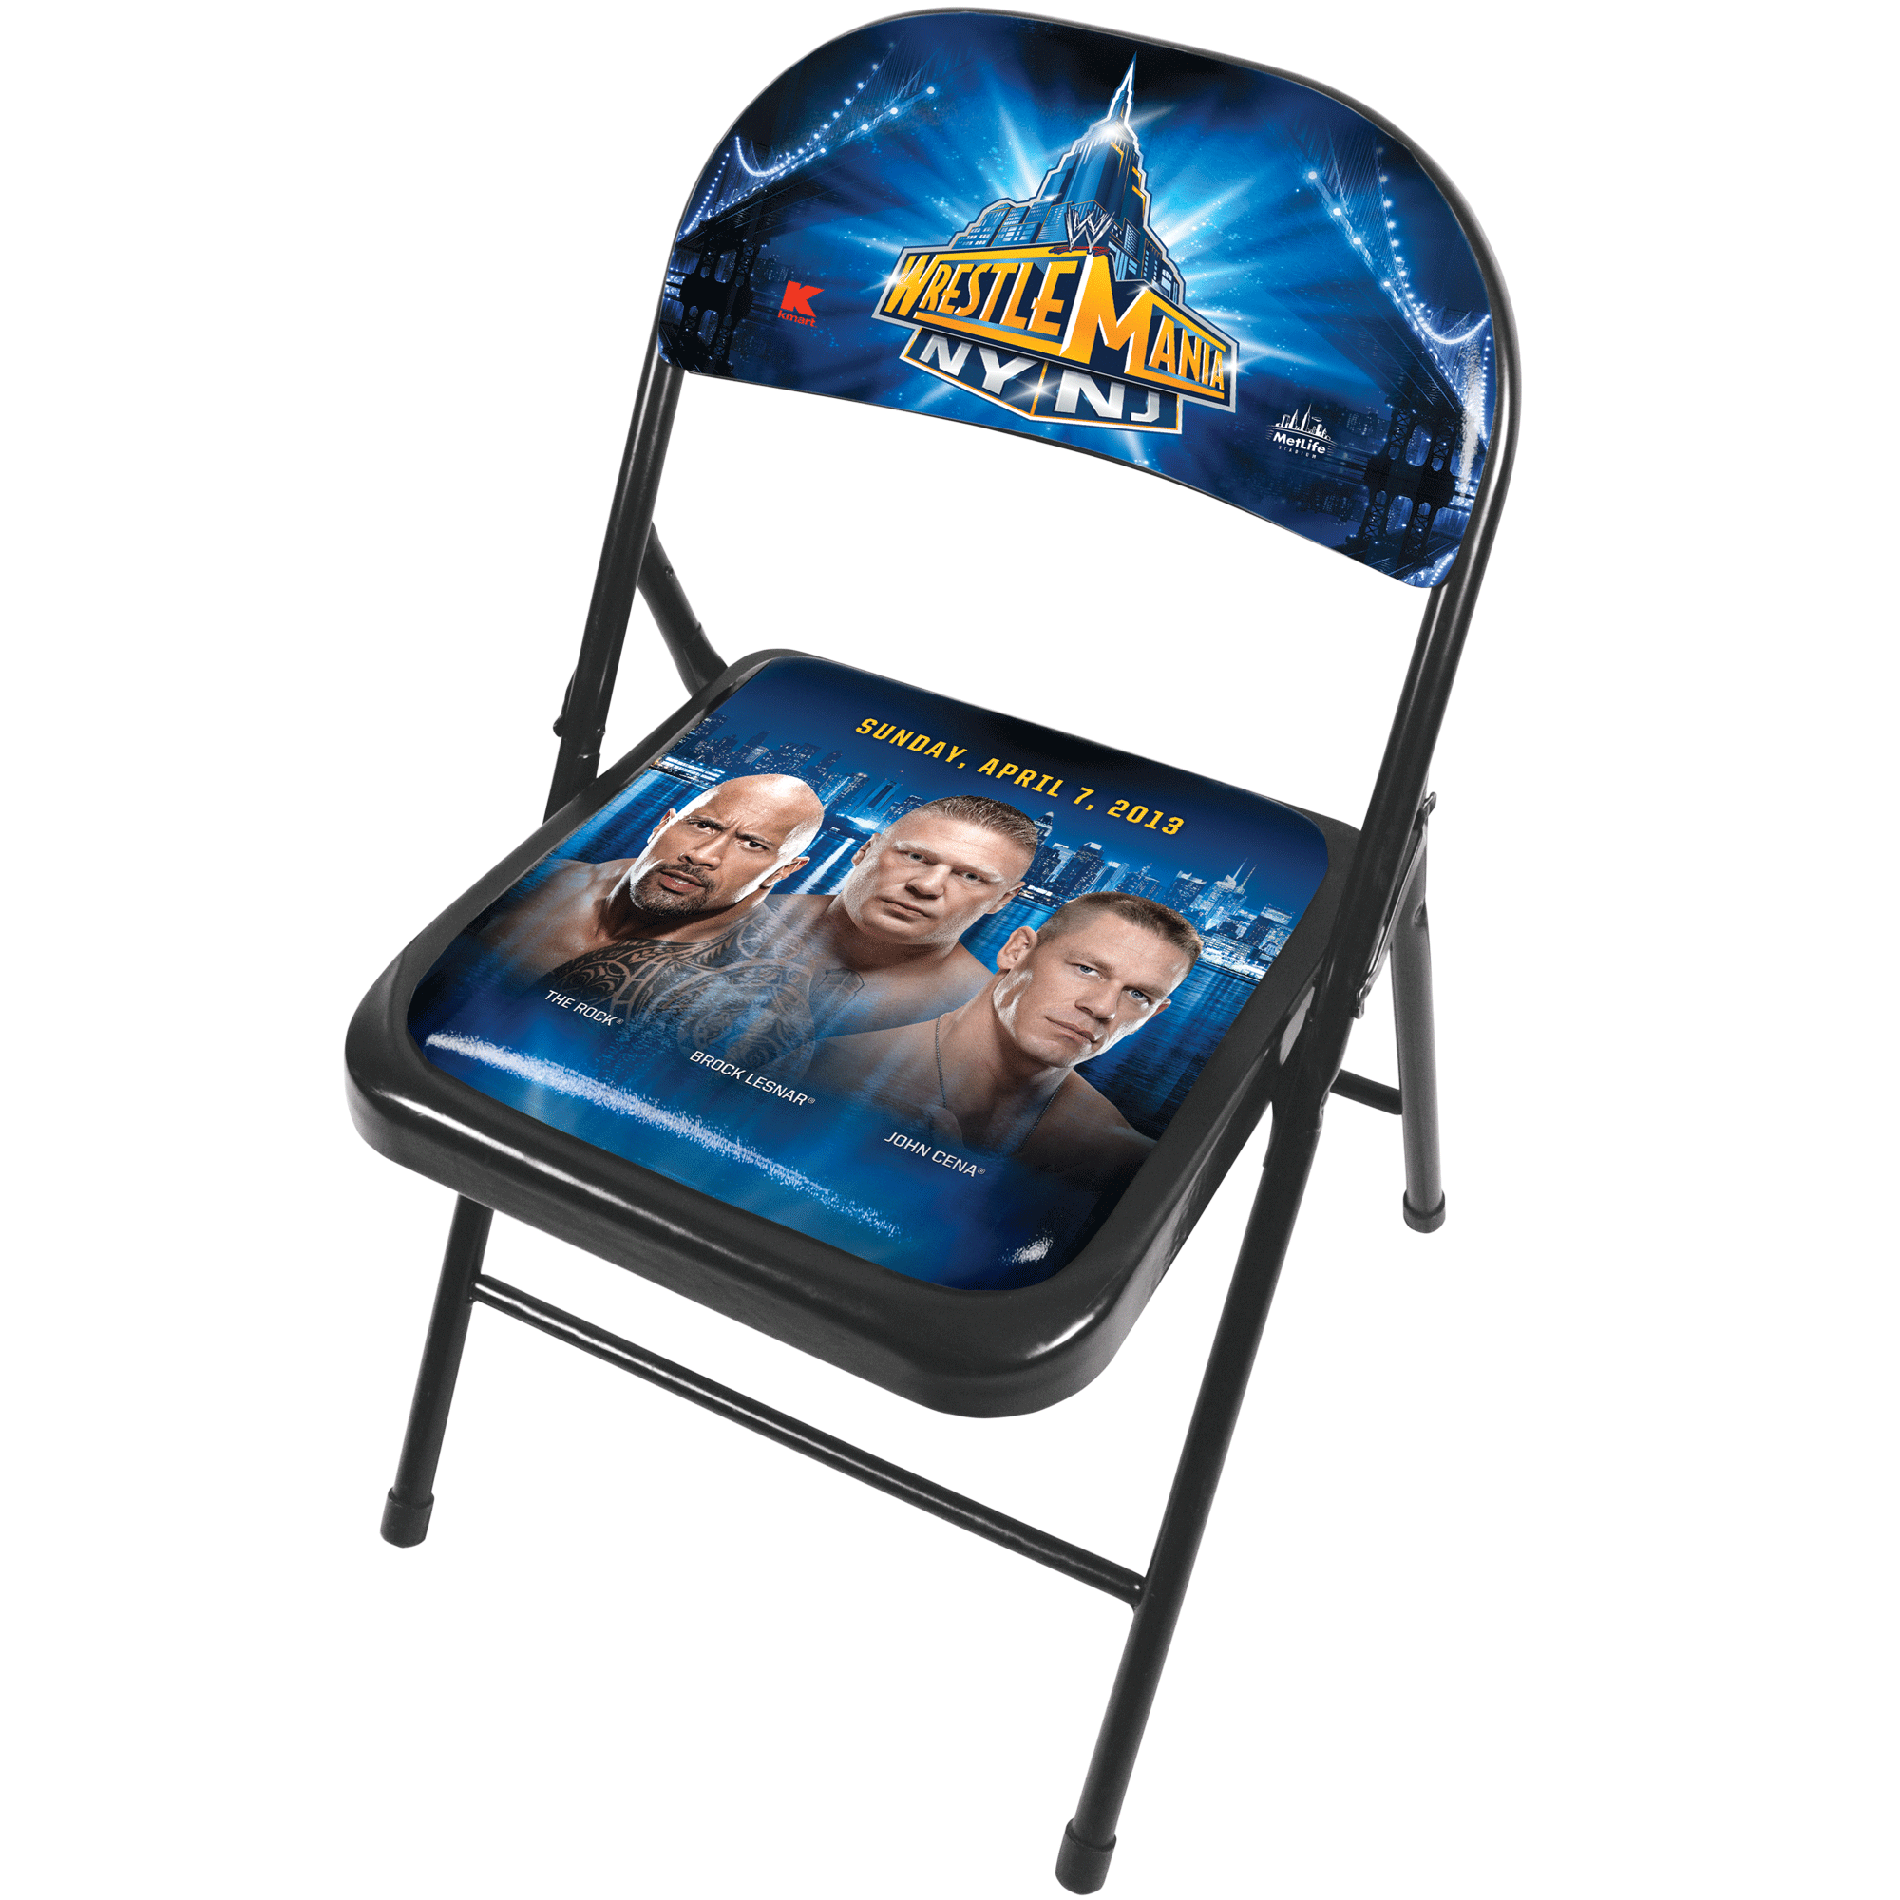 steel chair in wrestling office mat 48 x wwe limited edition wrestlemania 29